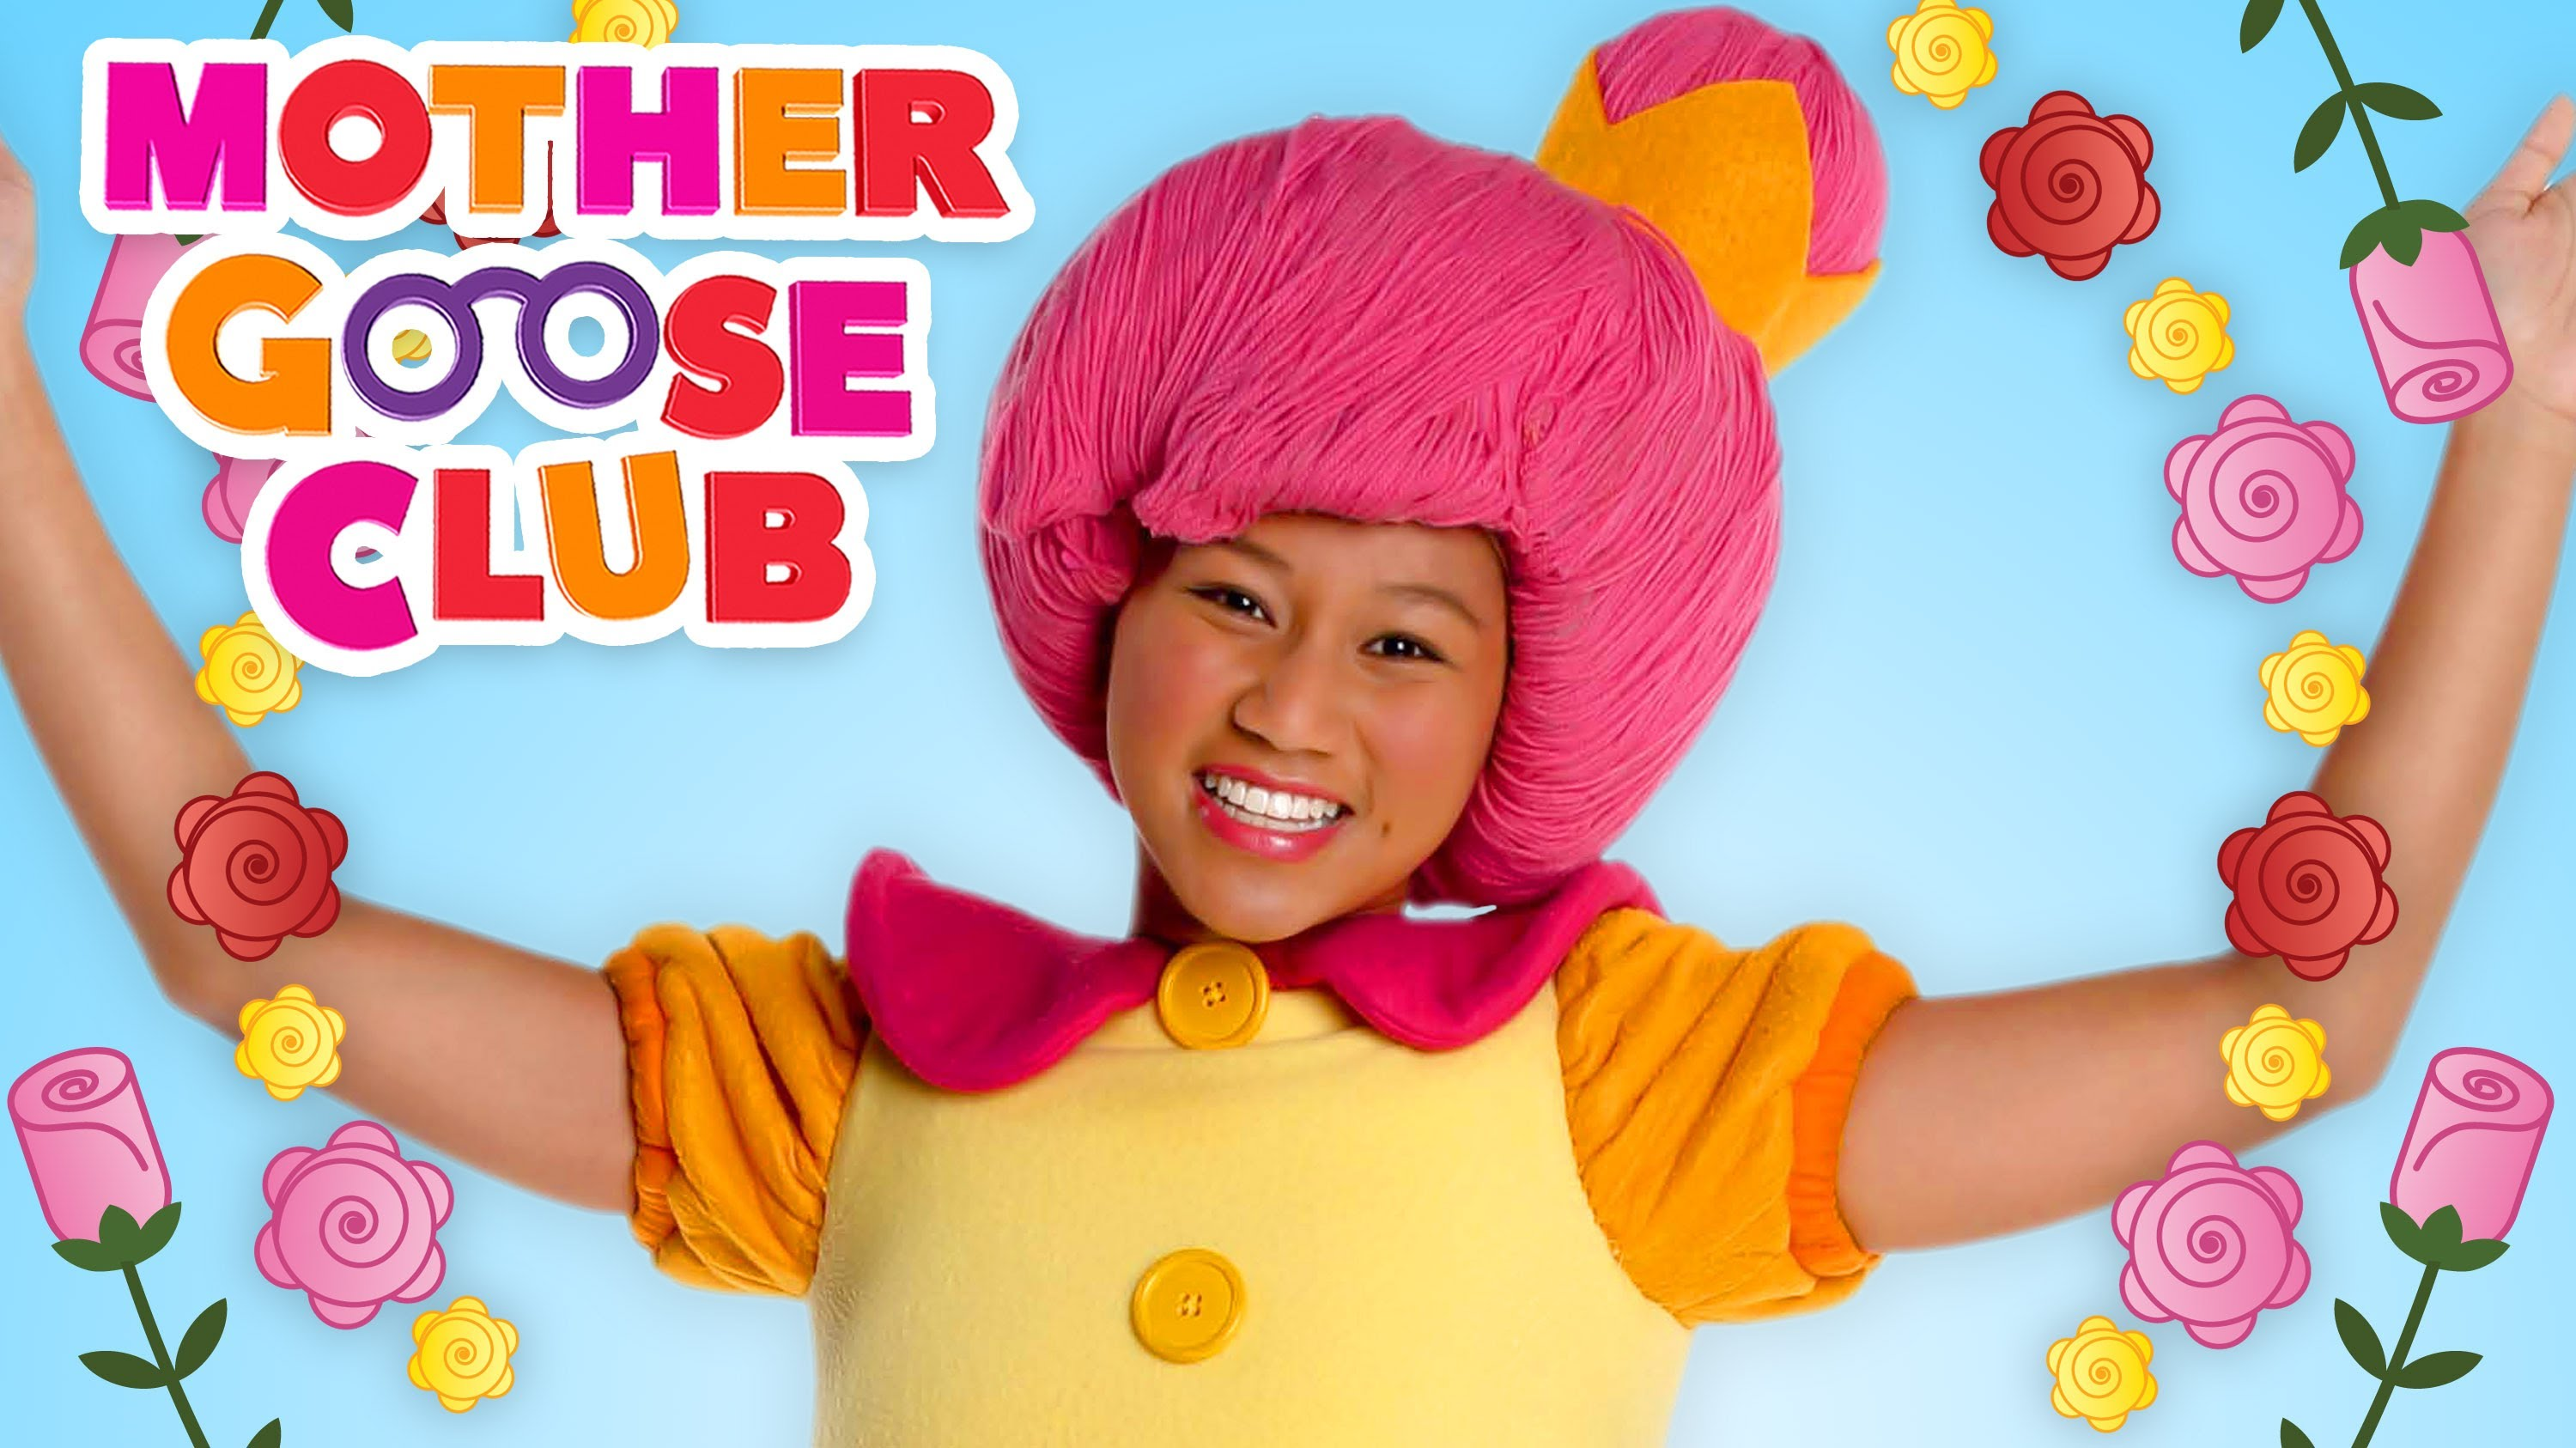 Ring Around the Rosy | Mother Goose Club Playhouse Kids Video